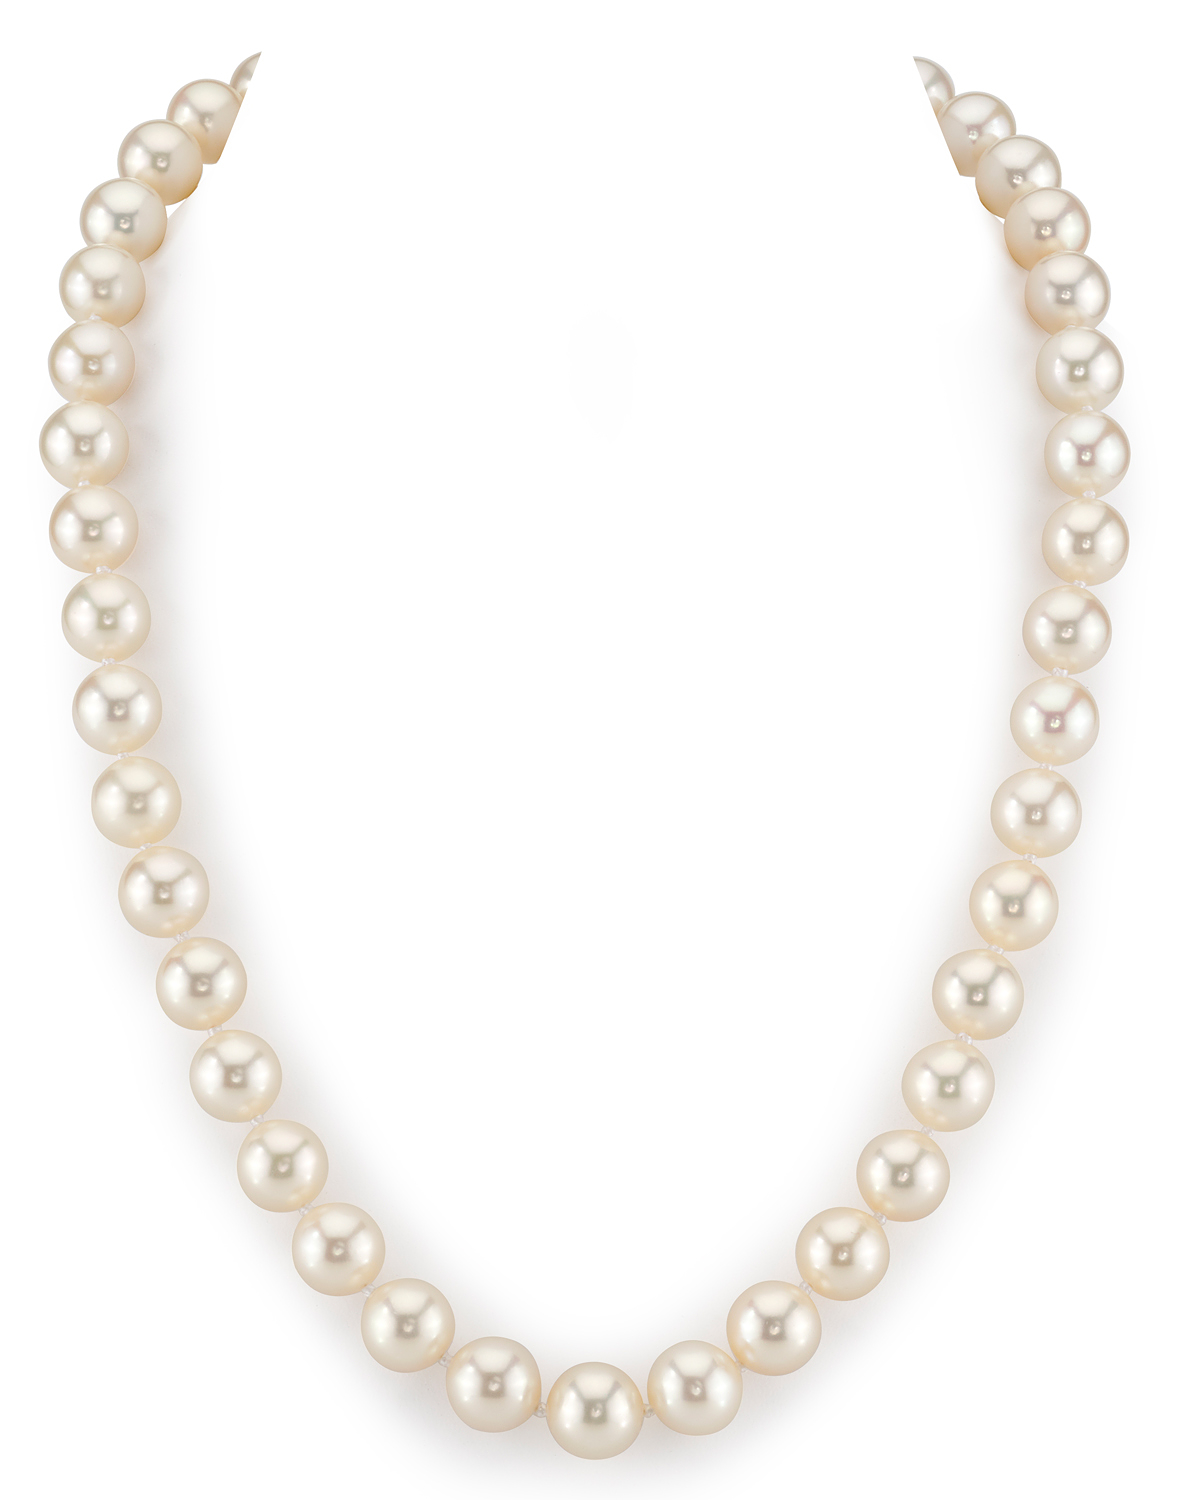 10-11mm White Freshwater Pearl Necklace